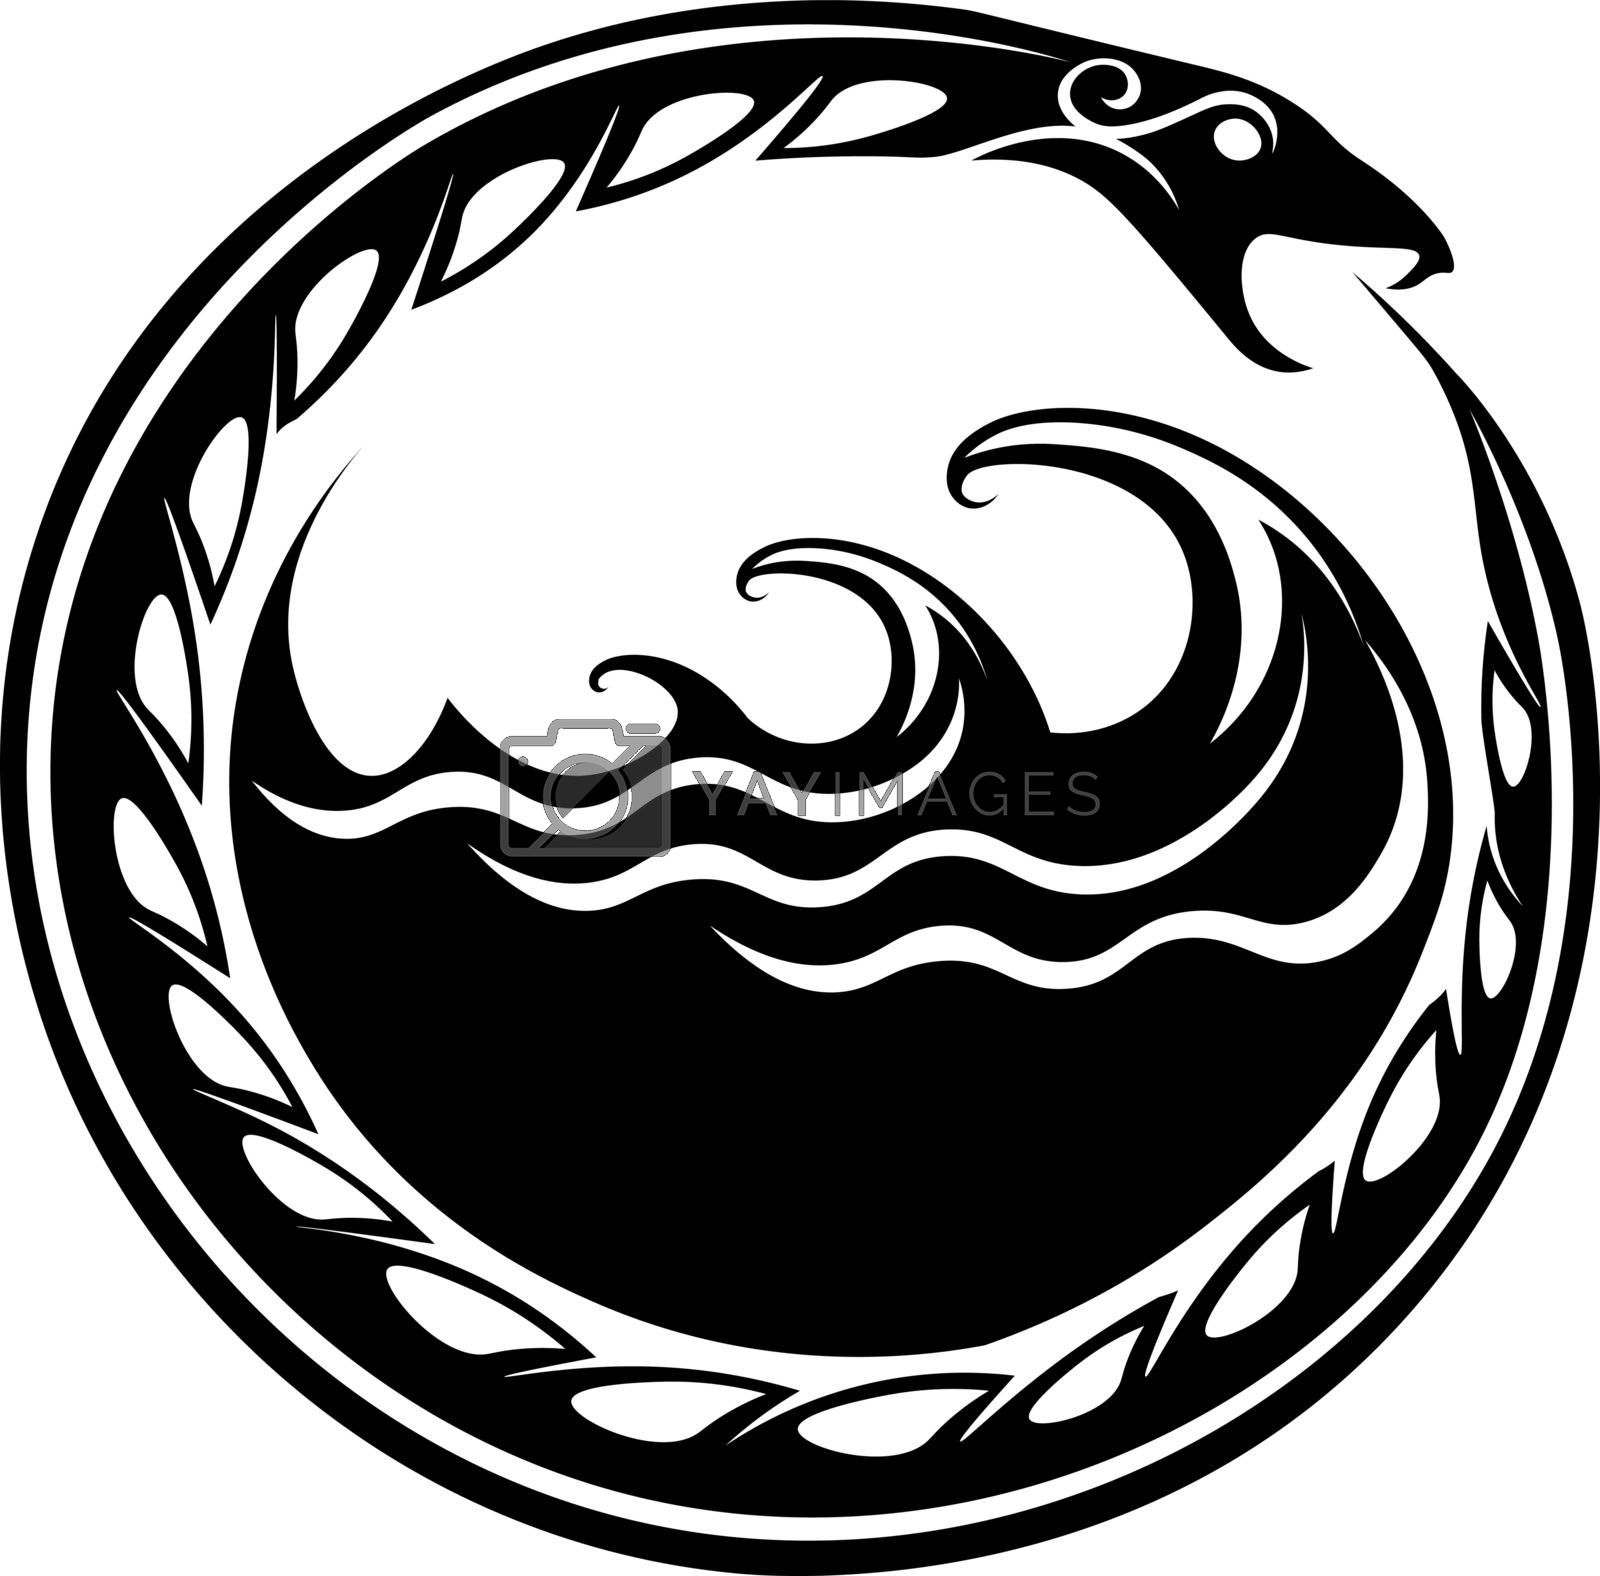 Occult symbol ouroboros in the water in old scandinavian style